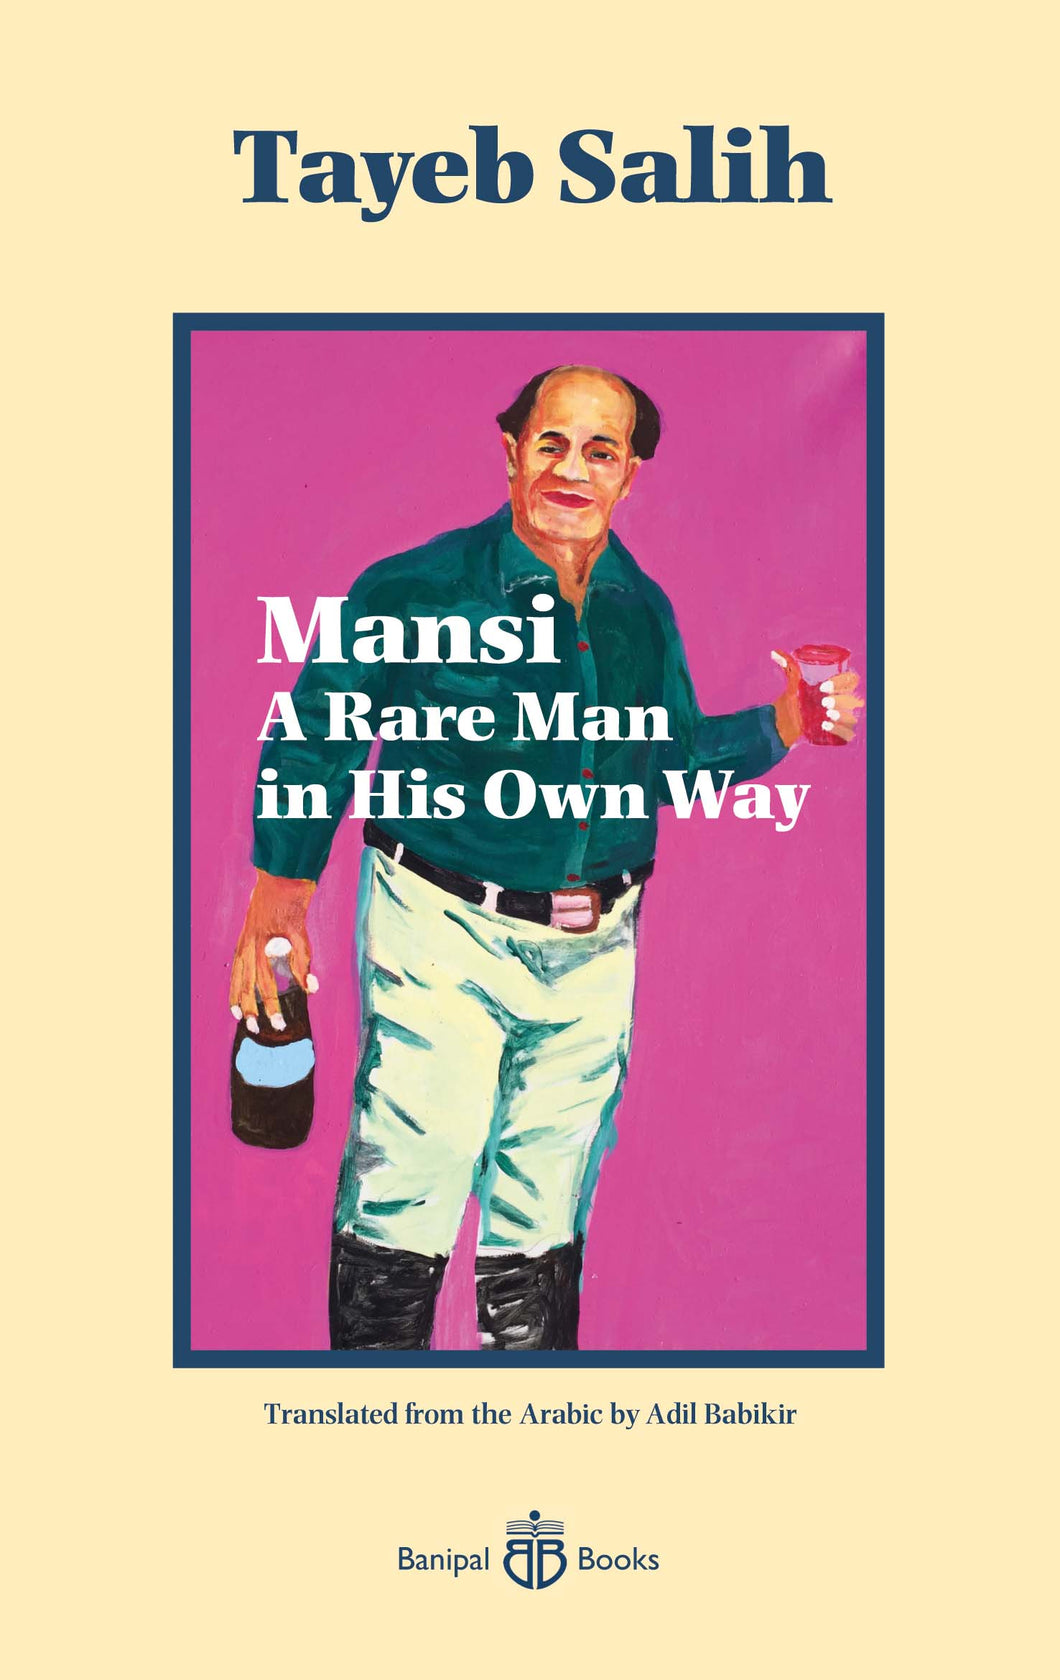 Mansi: A Rare Man in His Own Way